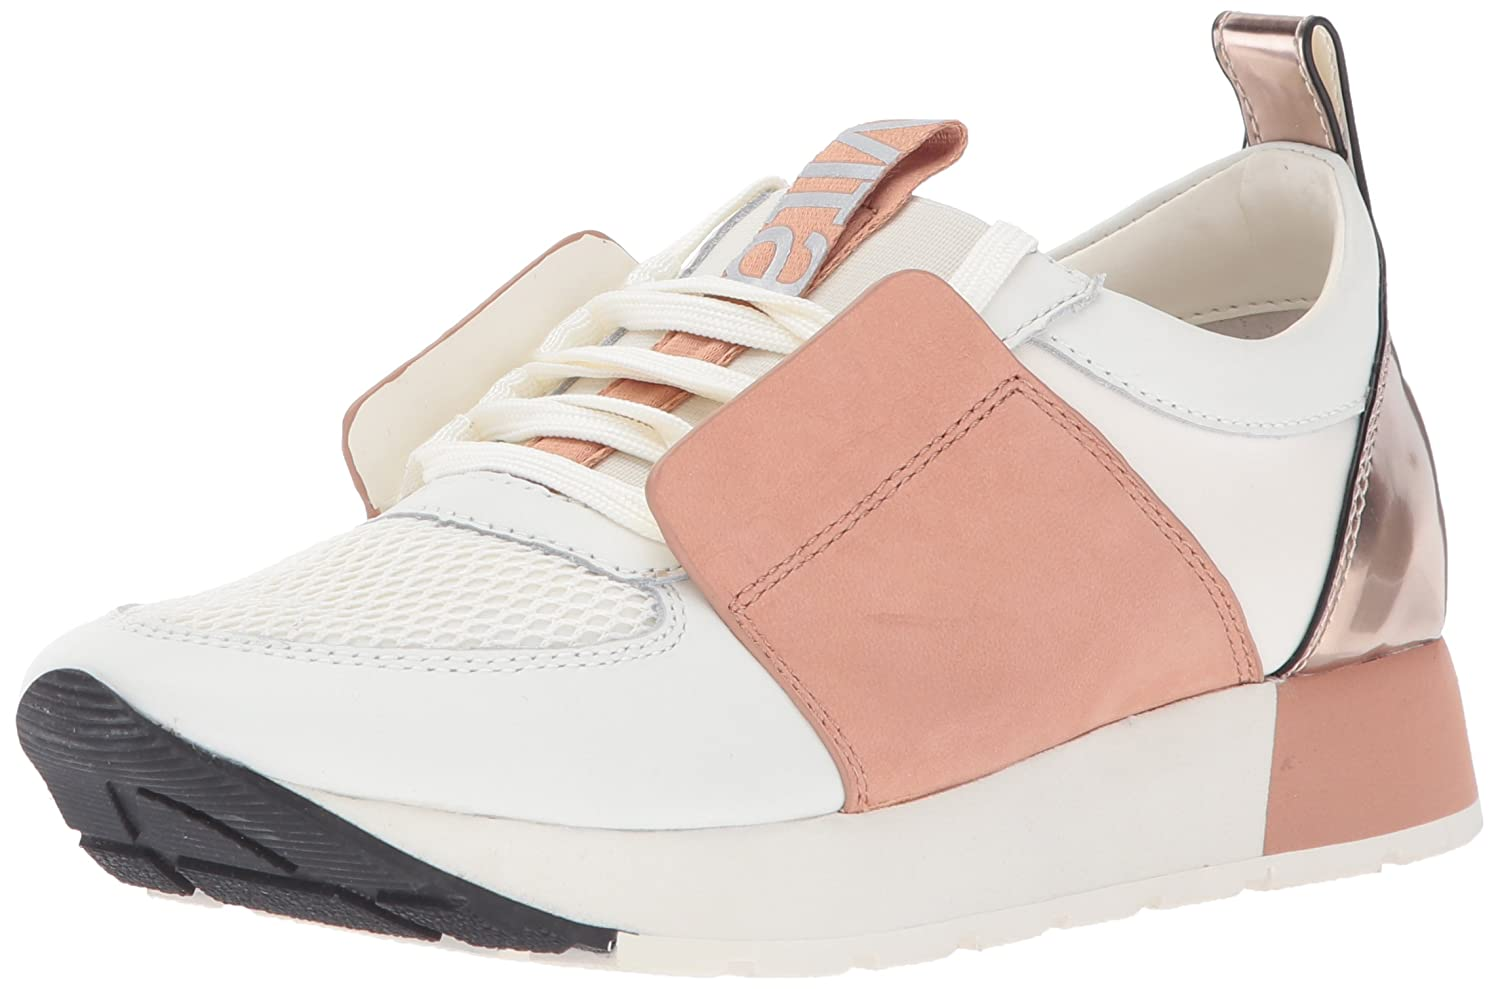 Dolce Vita Women's Yana Sneaker B071JNB5QH 8 B(M) US|White/Nude Leather